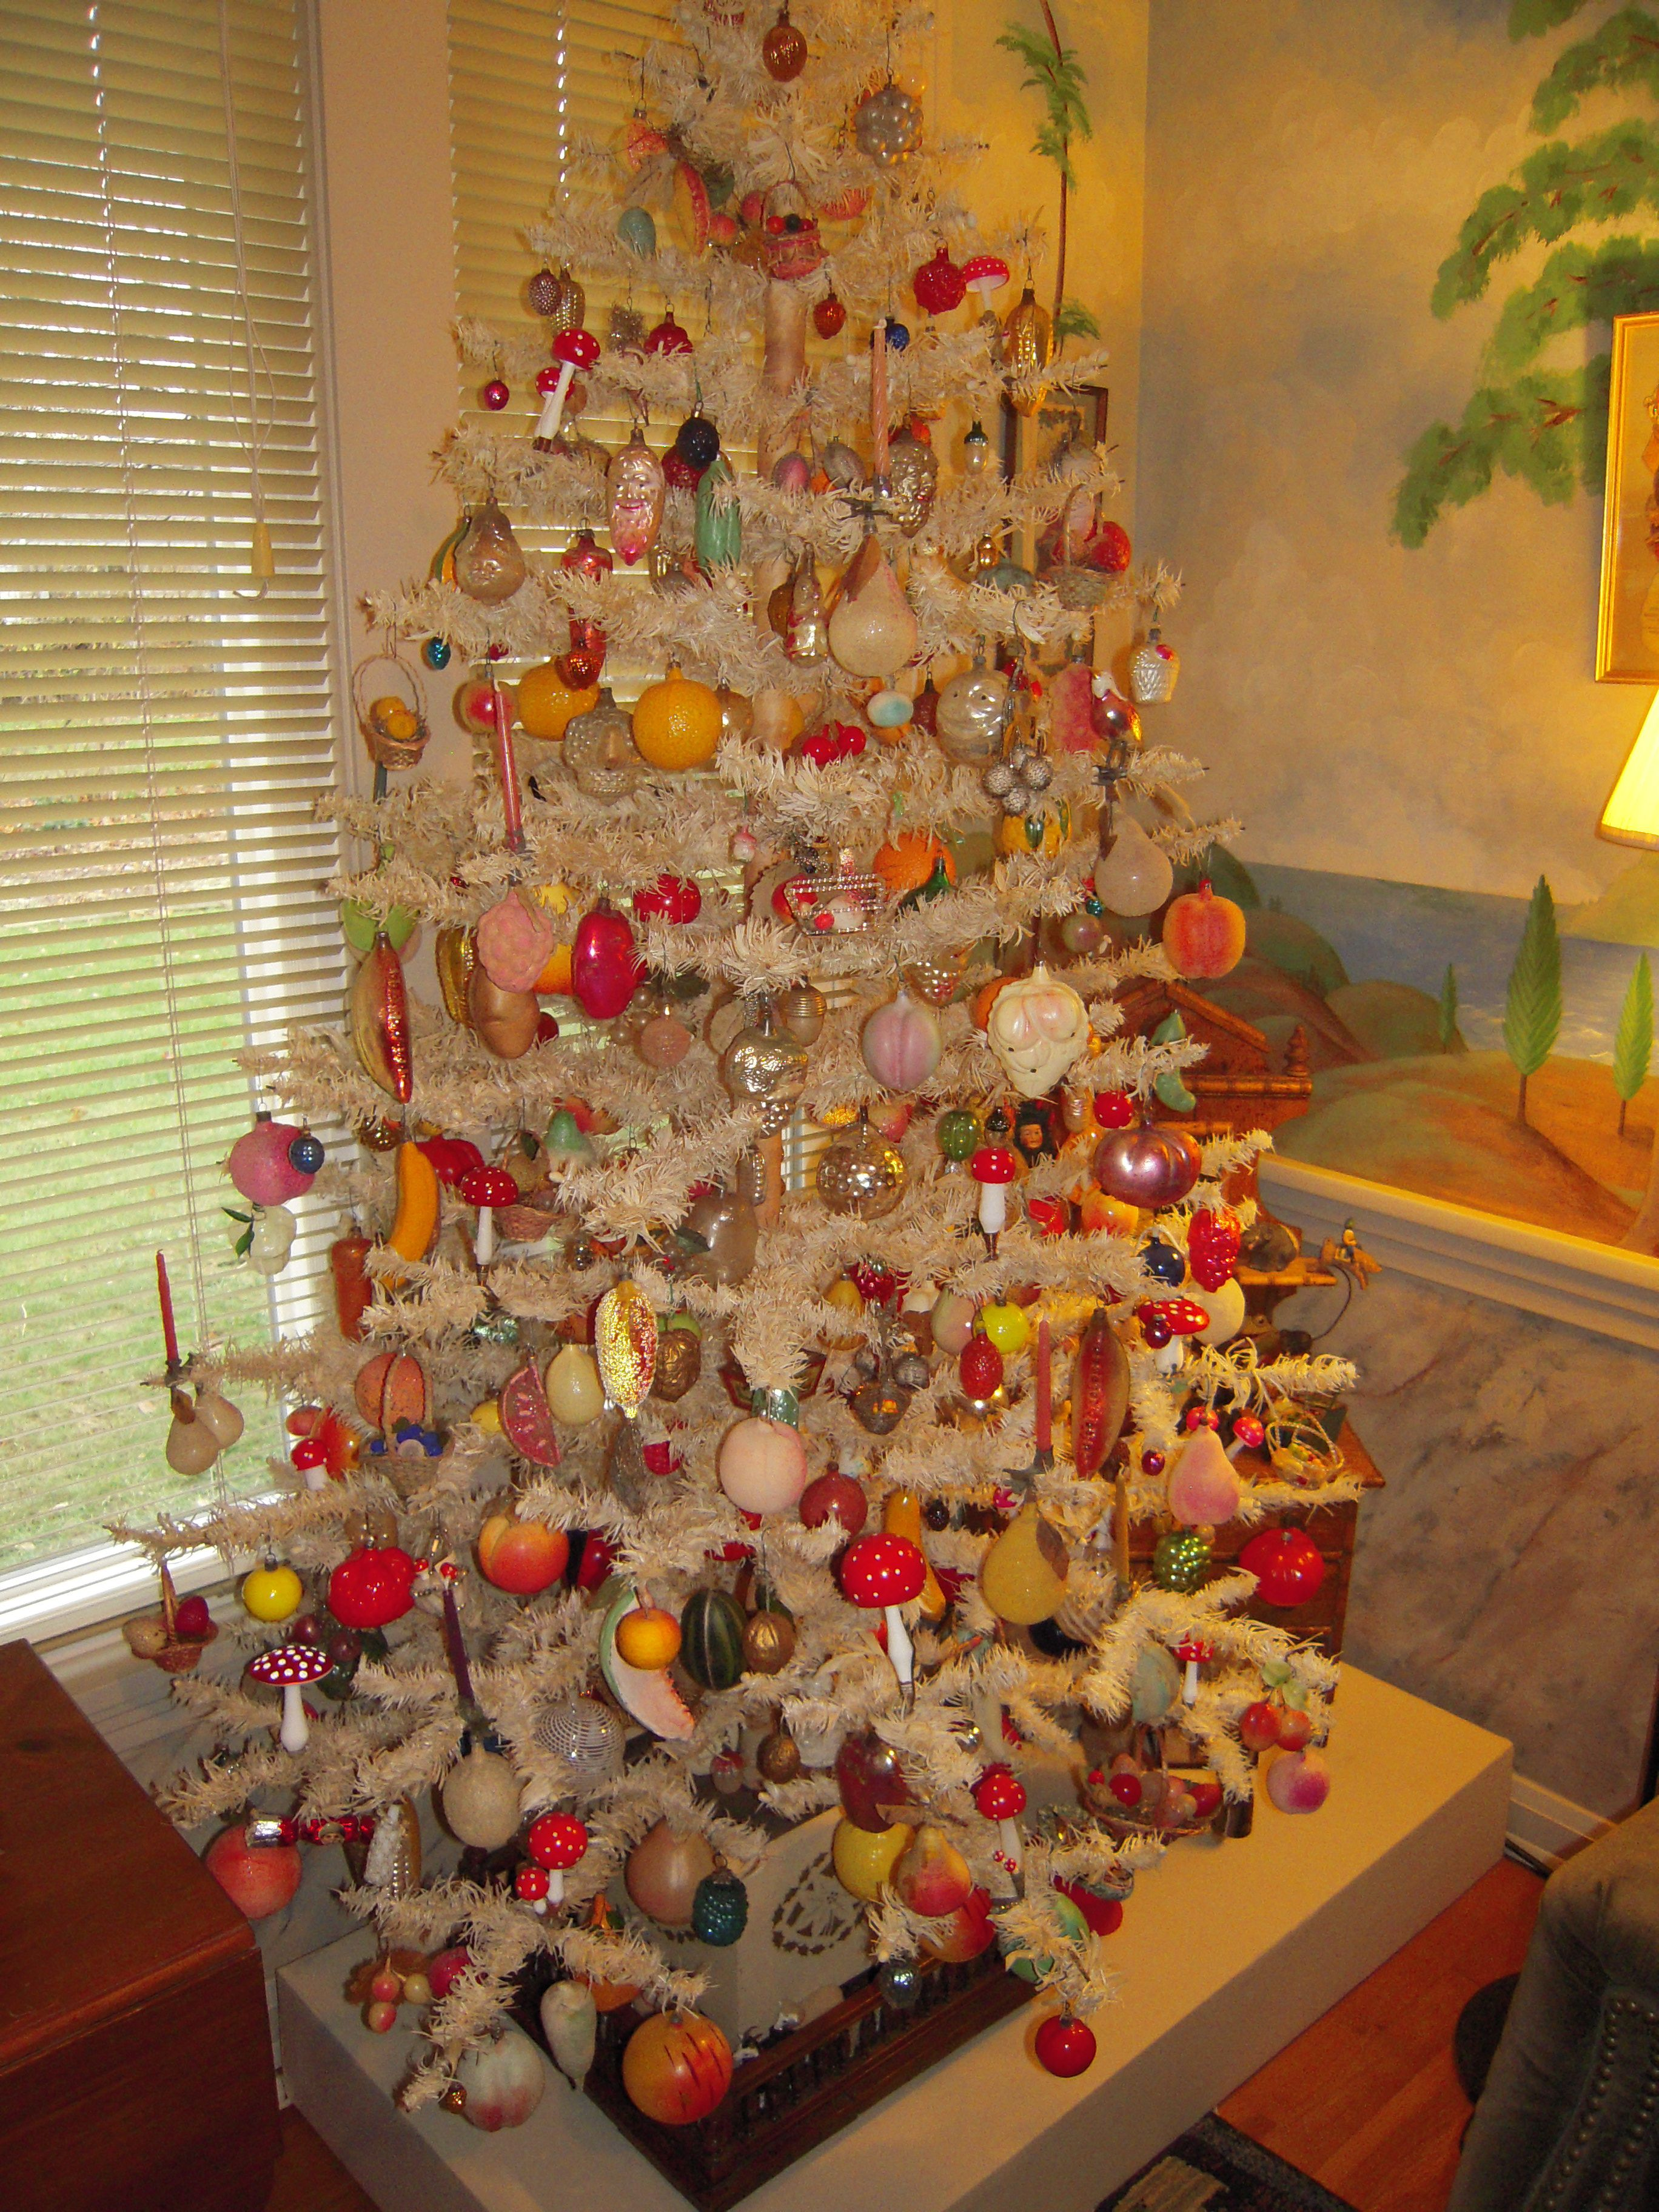 White Feather Tree With Edible Ornaments Mostly Fruits And Vegetables From Darla Jerry Arnold